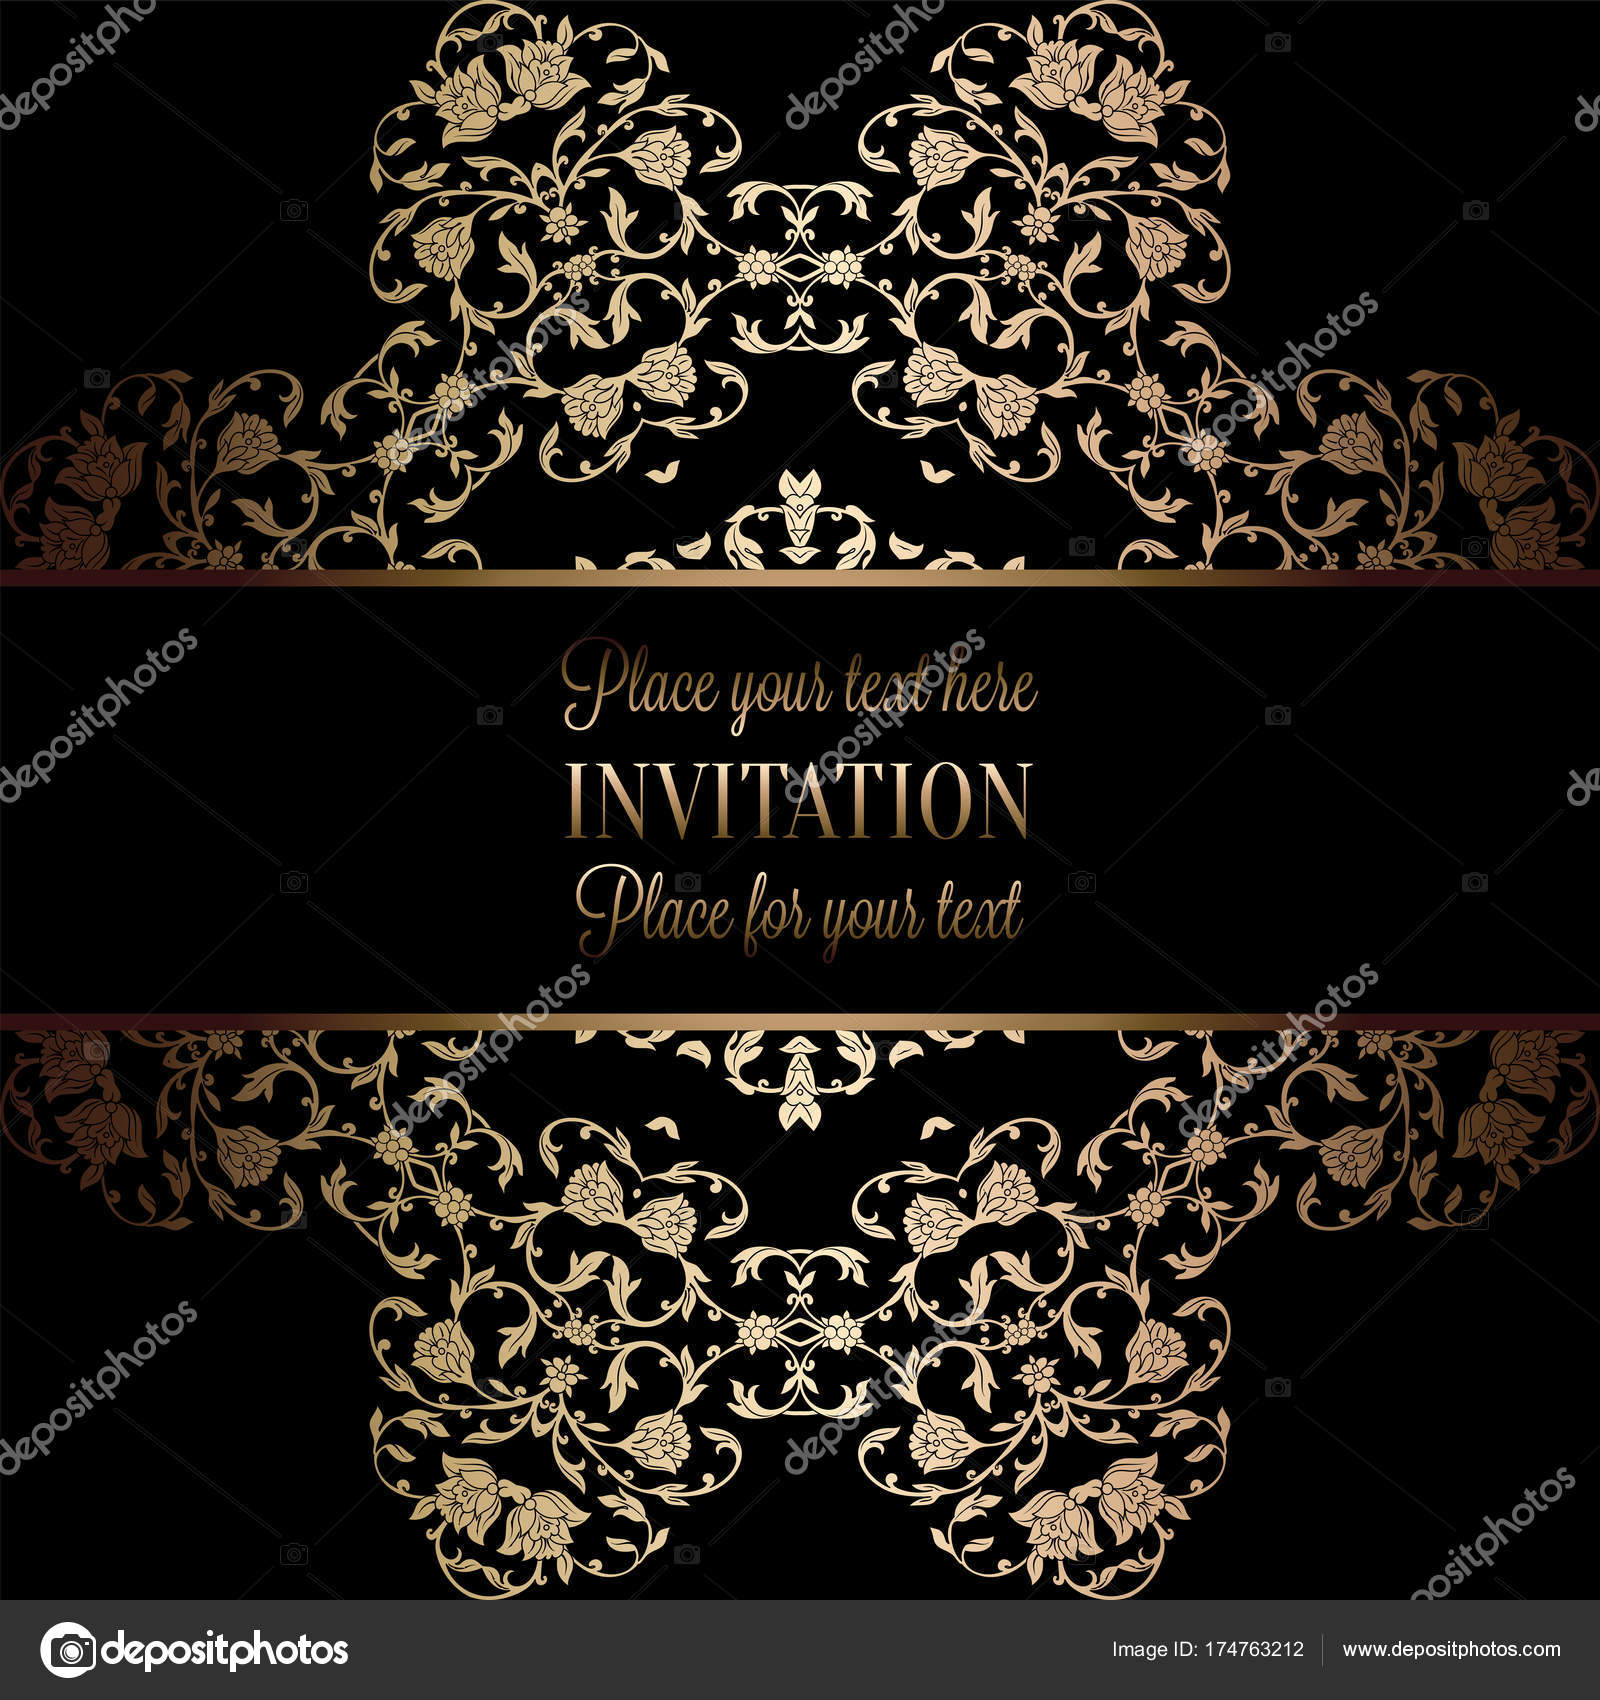 Vintage baroque wedding invitation template with damask background vintage baroque wedding invitation template with damask background tradition decoration for wedding vector illustration in black and gold stopboris Images